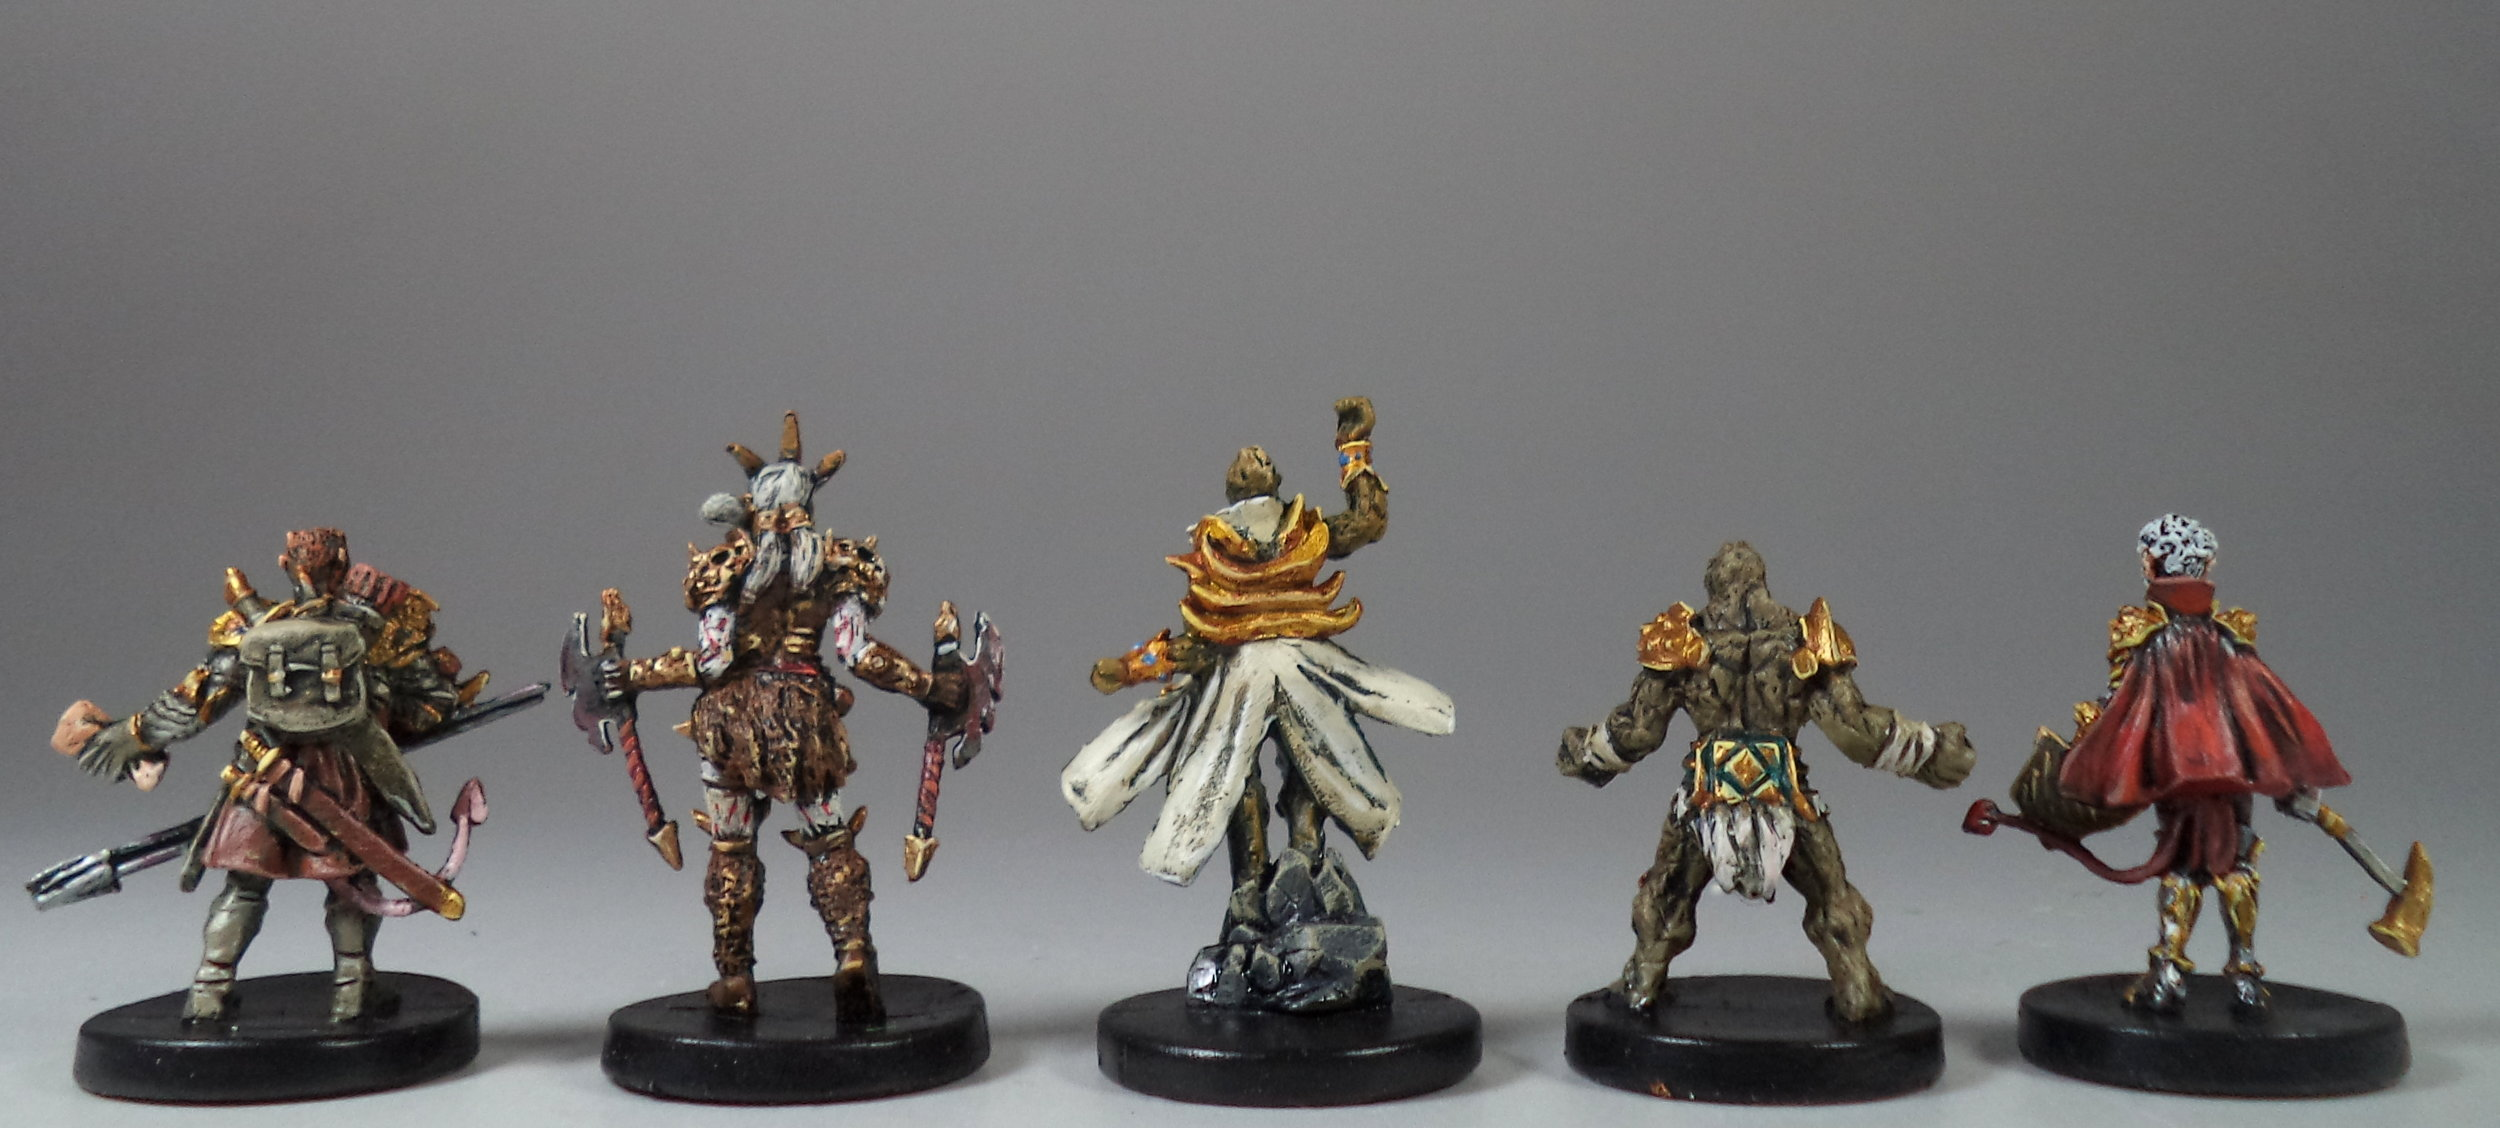 Gloomhaven Painted Gloomhaven Gloomhaven Miniature Painting (6).jpg